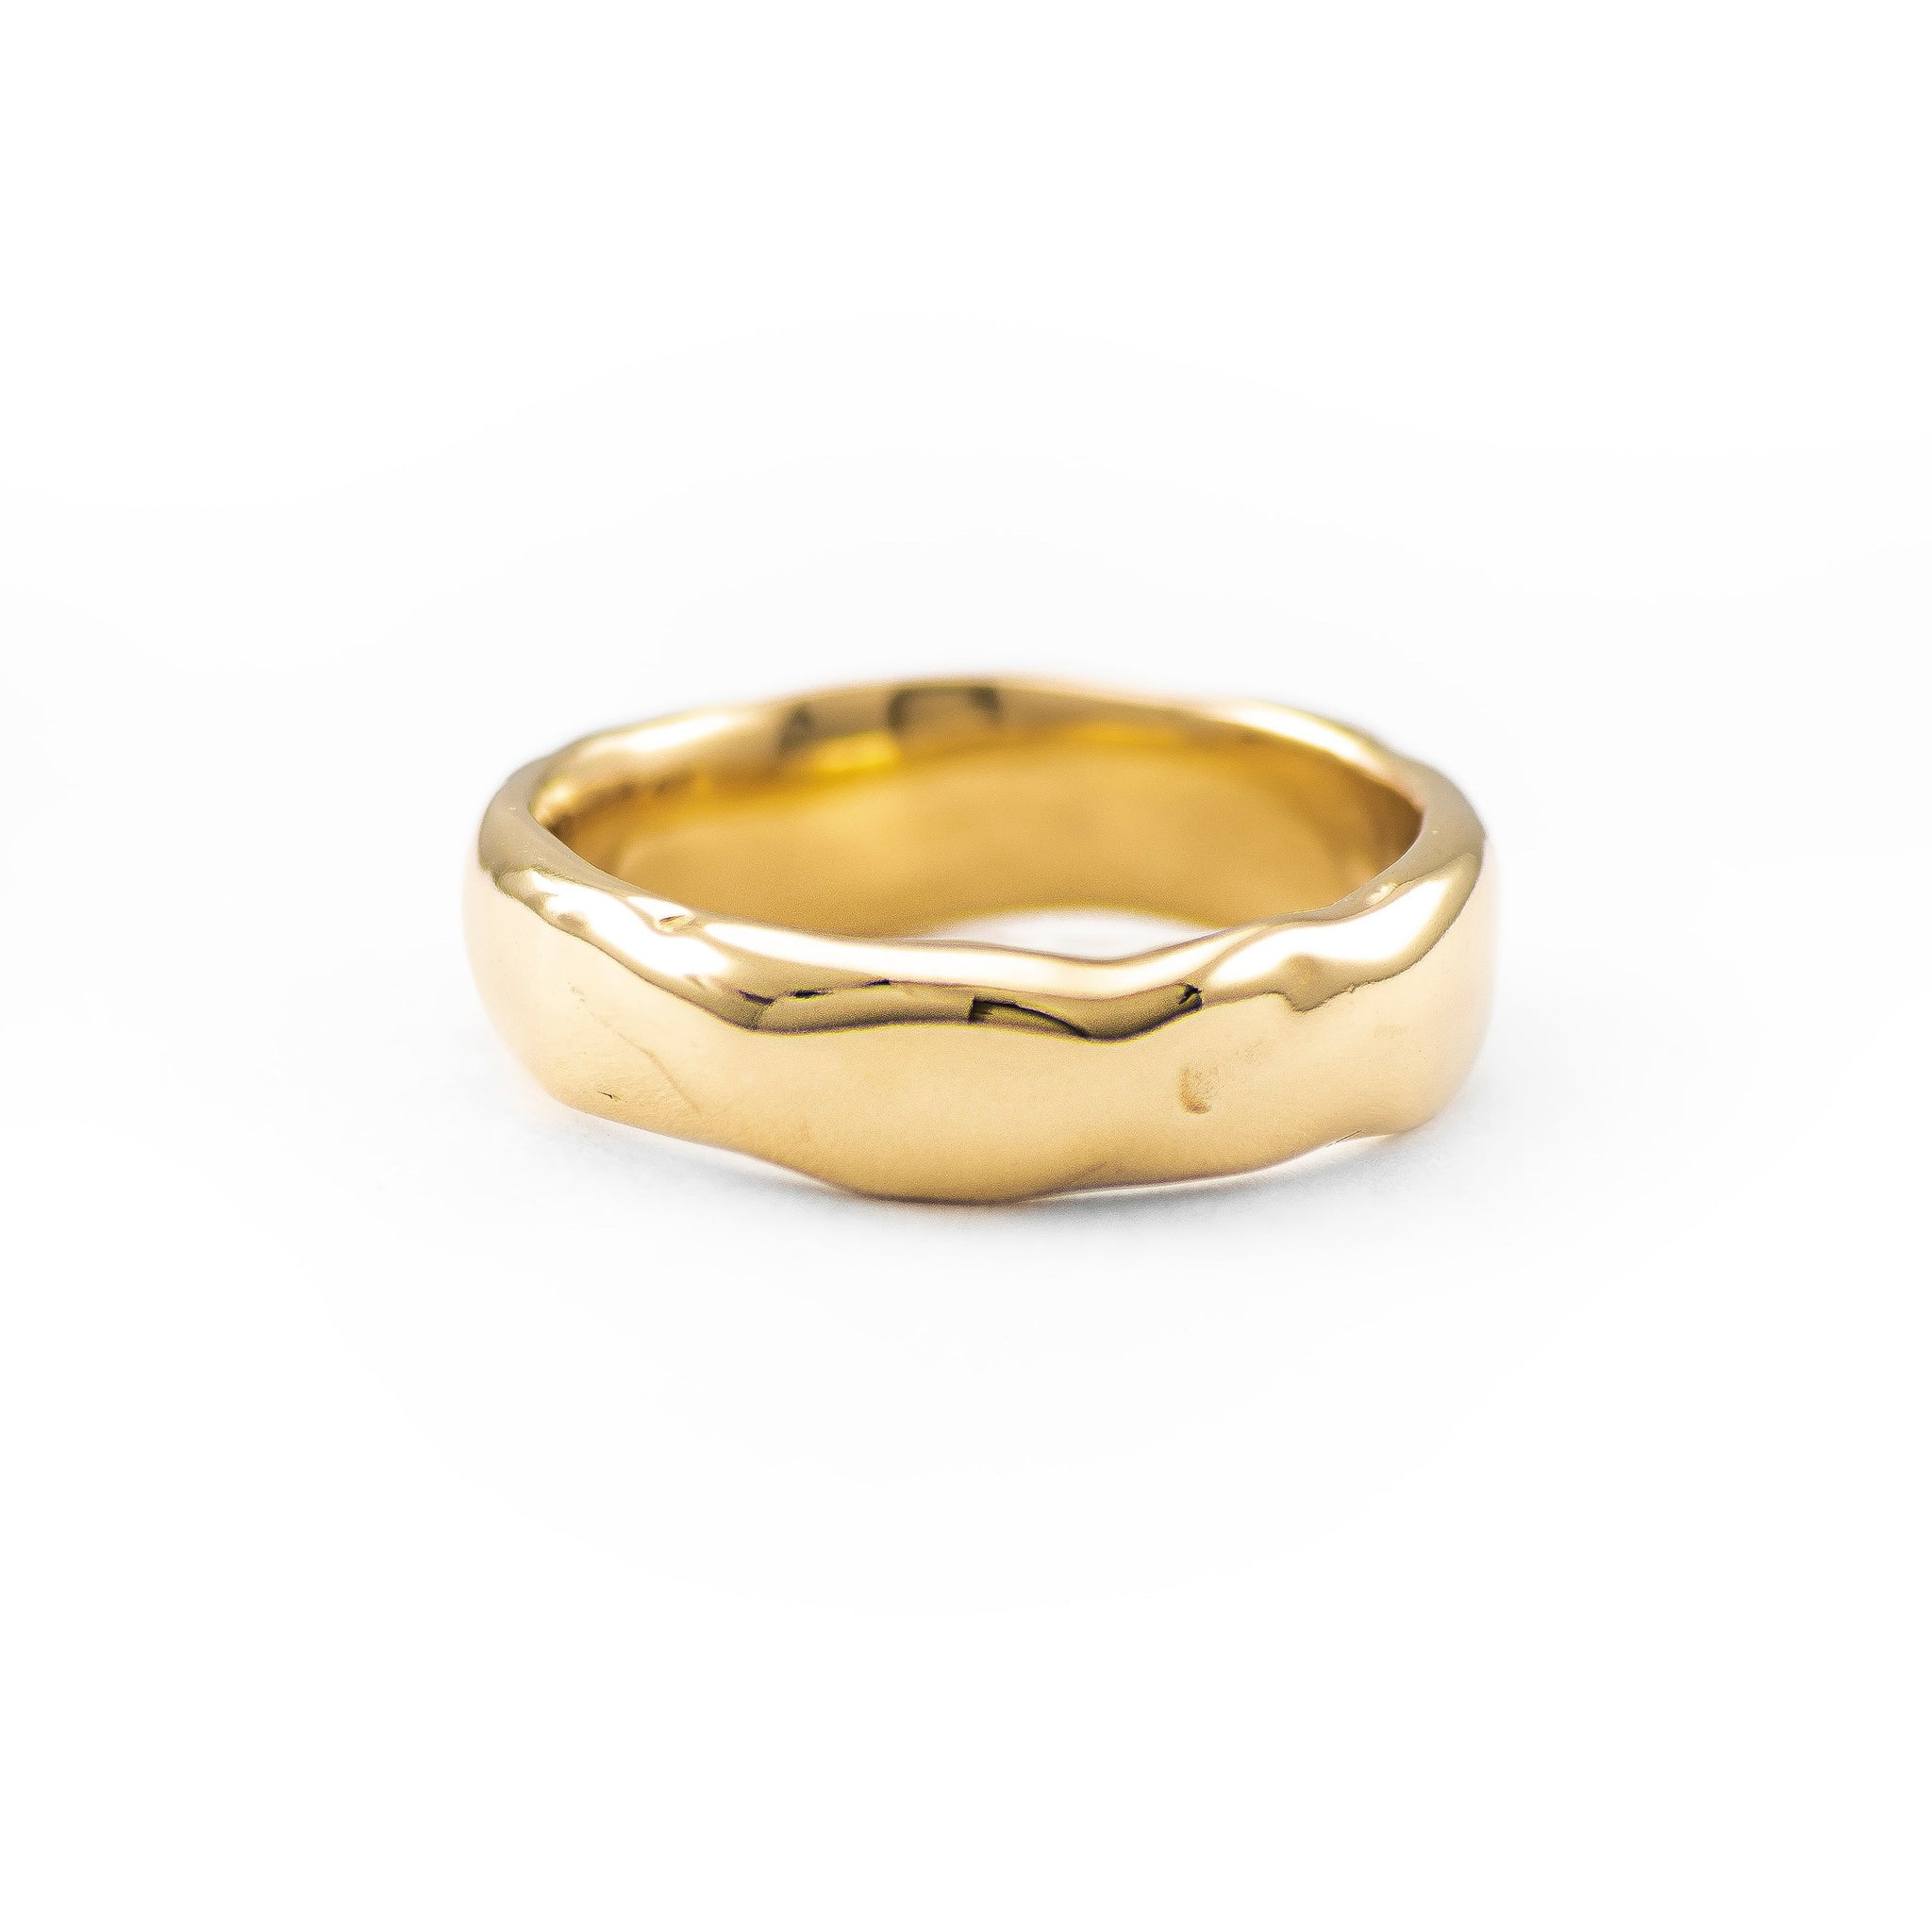 Large Melt Gold Band - Johanna Brierley Jewellery Design